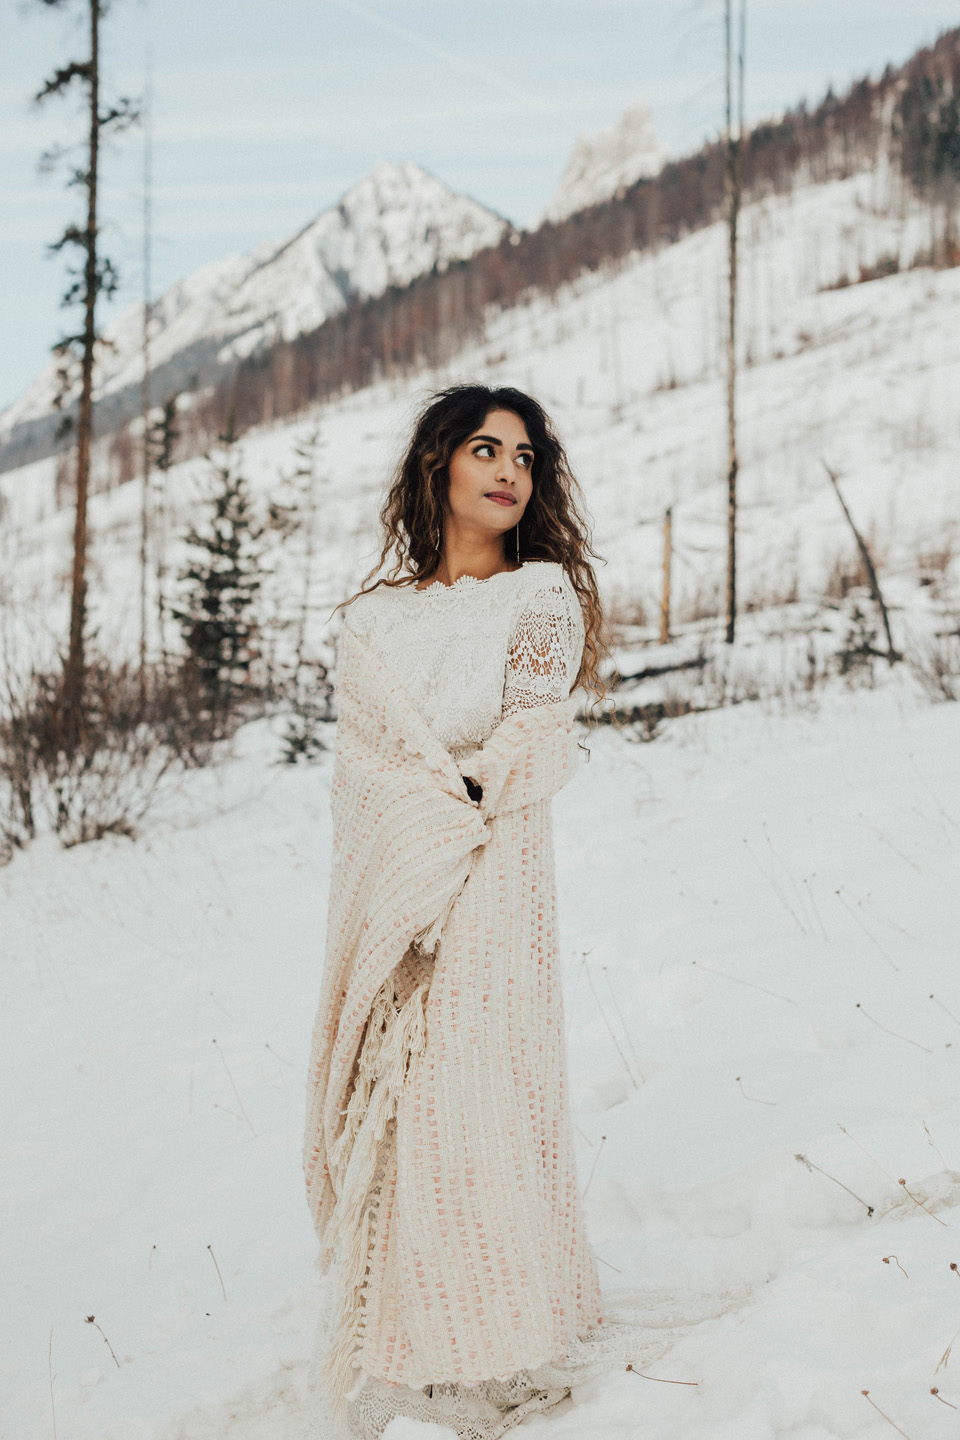 Winter Mountain Bohemain Bridal Inspiration - Michelle Larmand Photography - Banff Wedding Photography -061